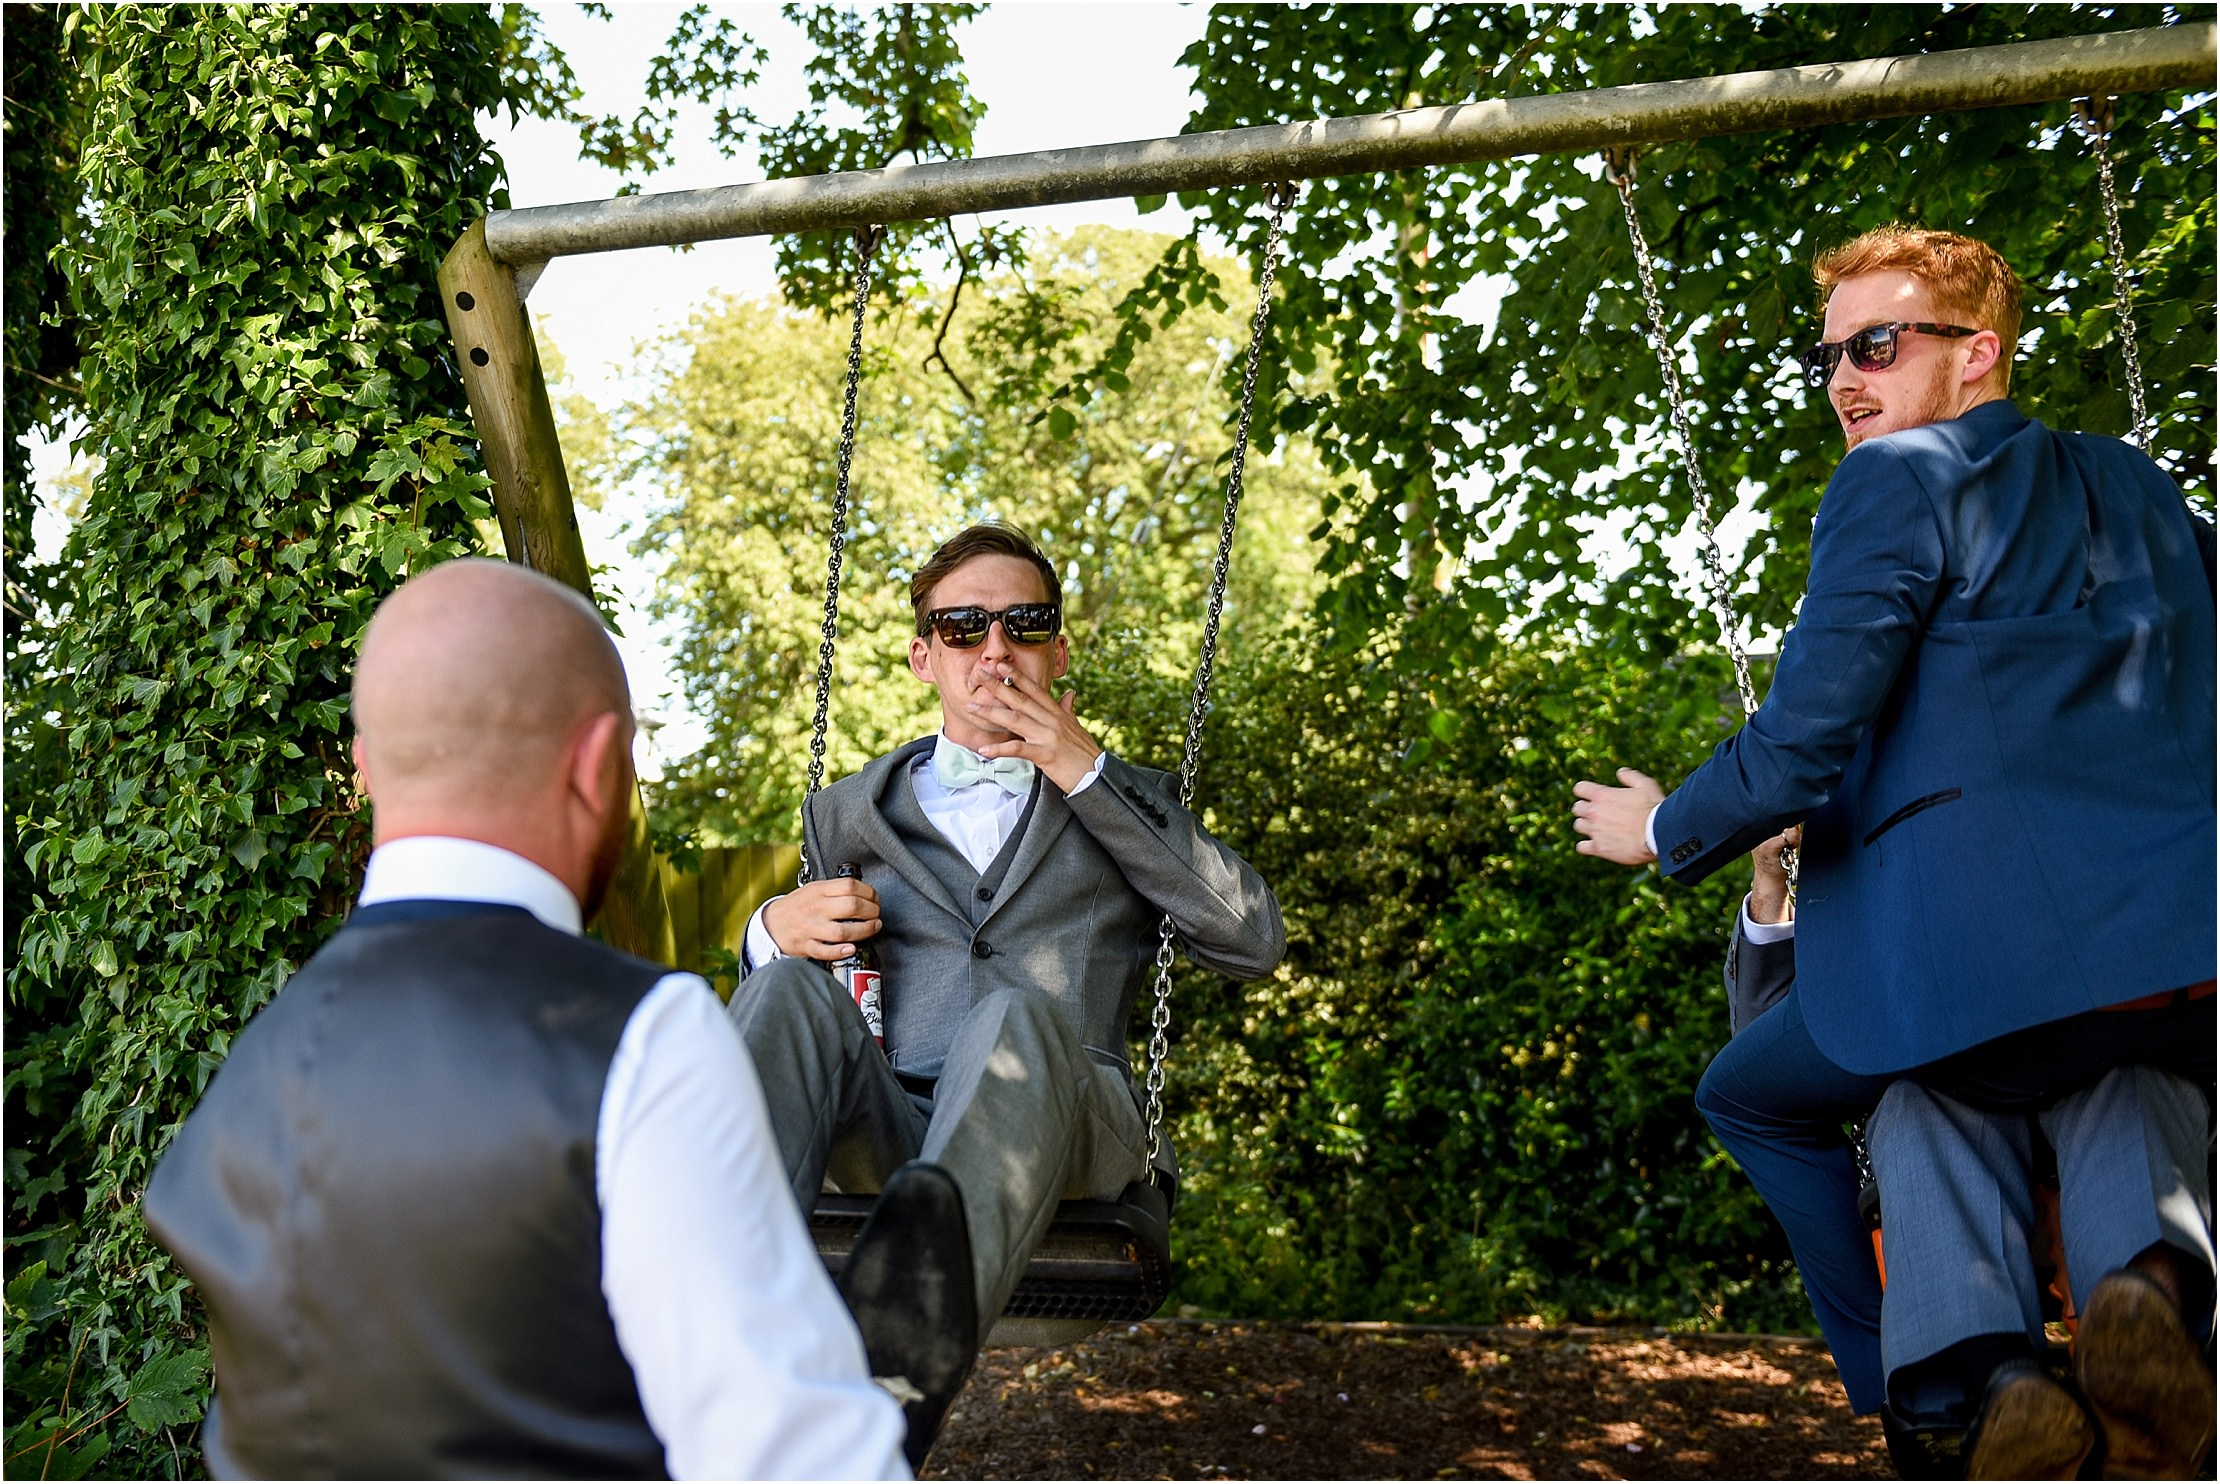 dan-wootton-wedding-photography-2015 - 092.jpg